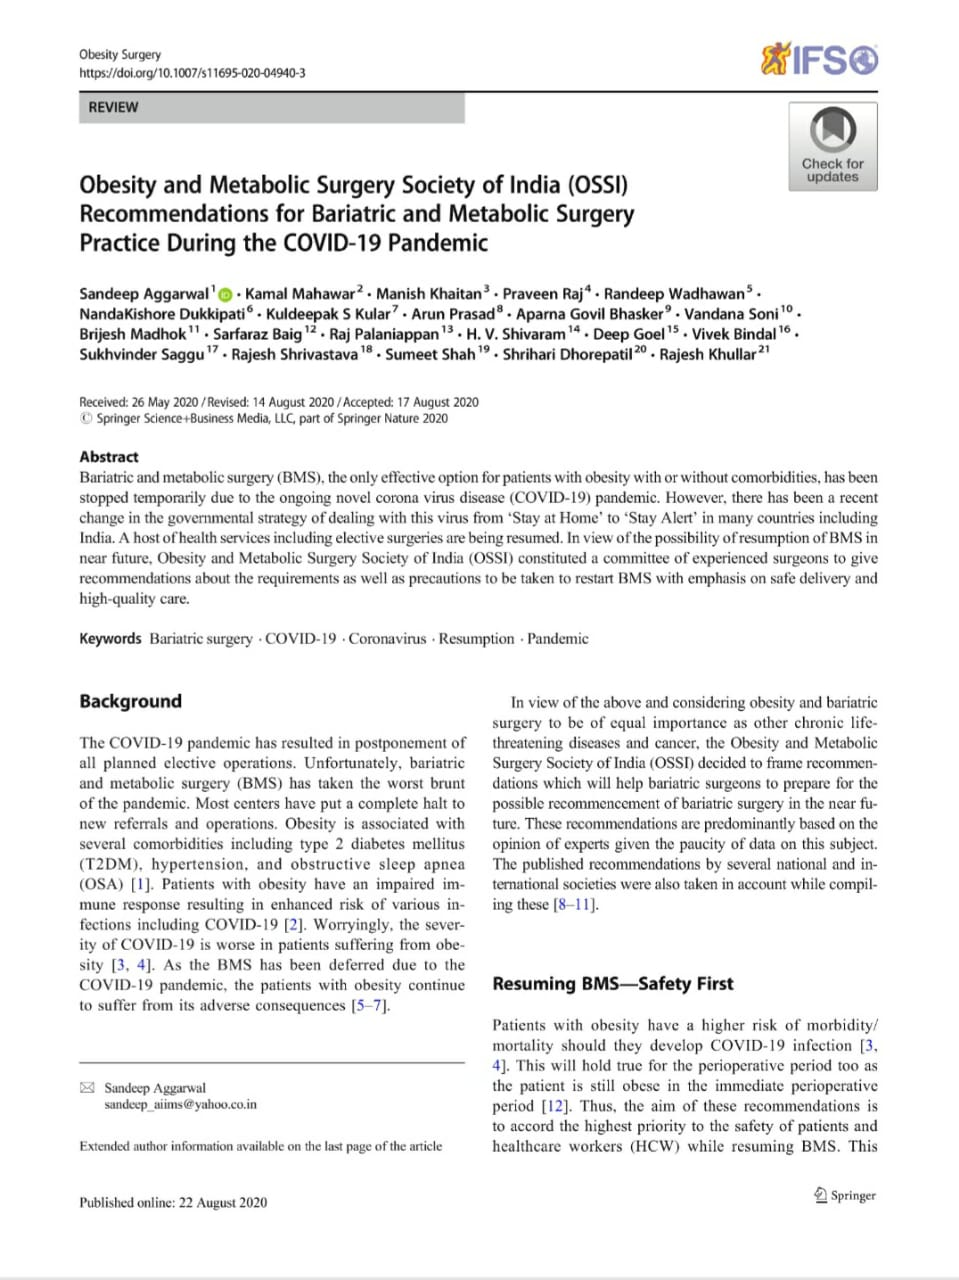 ossi recommendations for bariatric surgery and metabolic surgery due to covid19